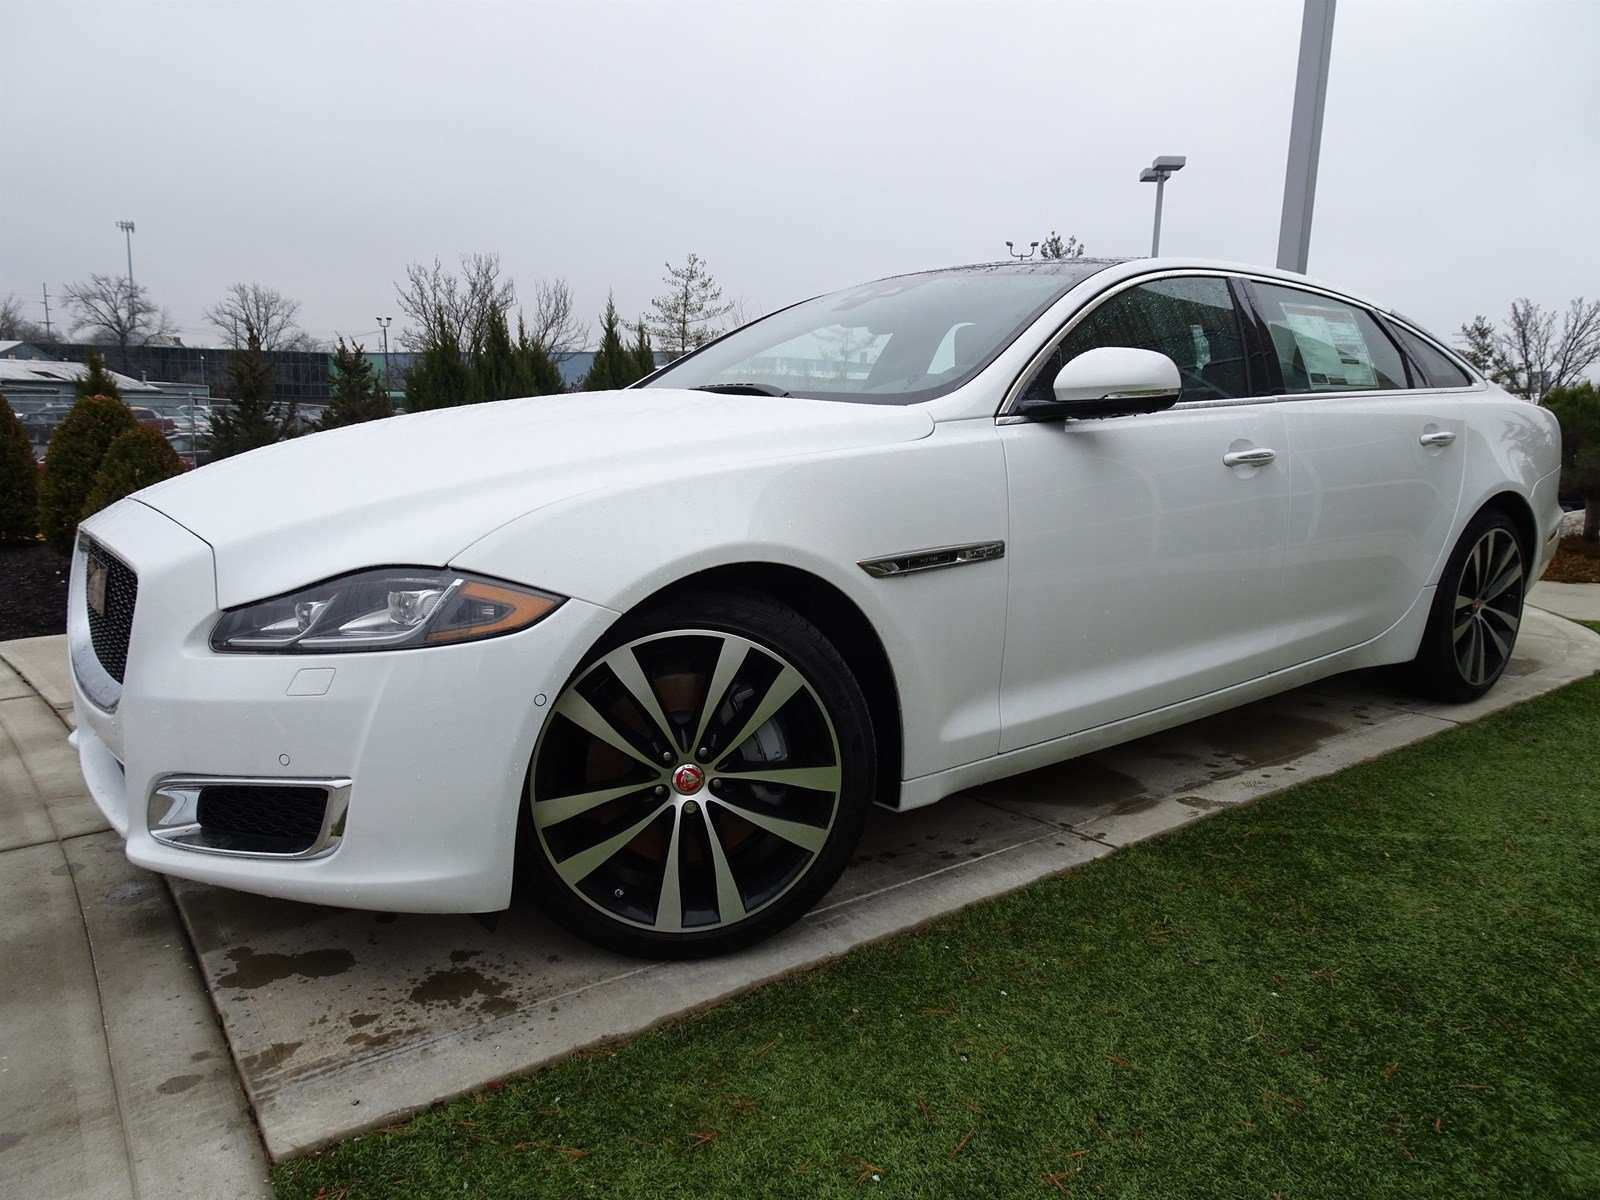 45 New 2019 Jaguar 4 Door Exterior And Interior